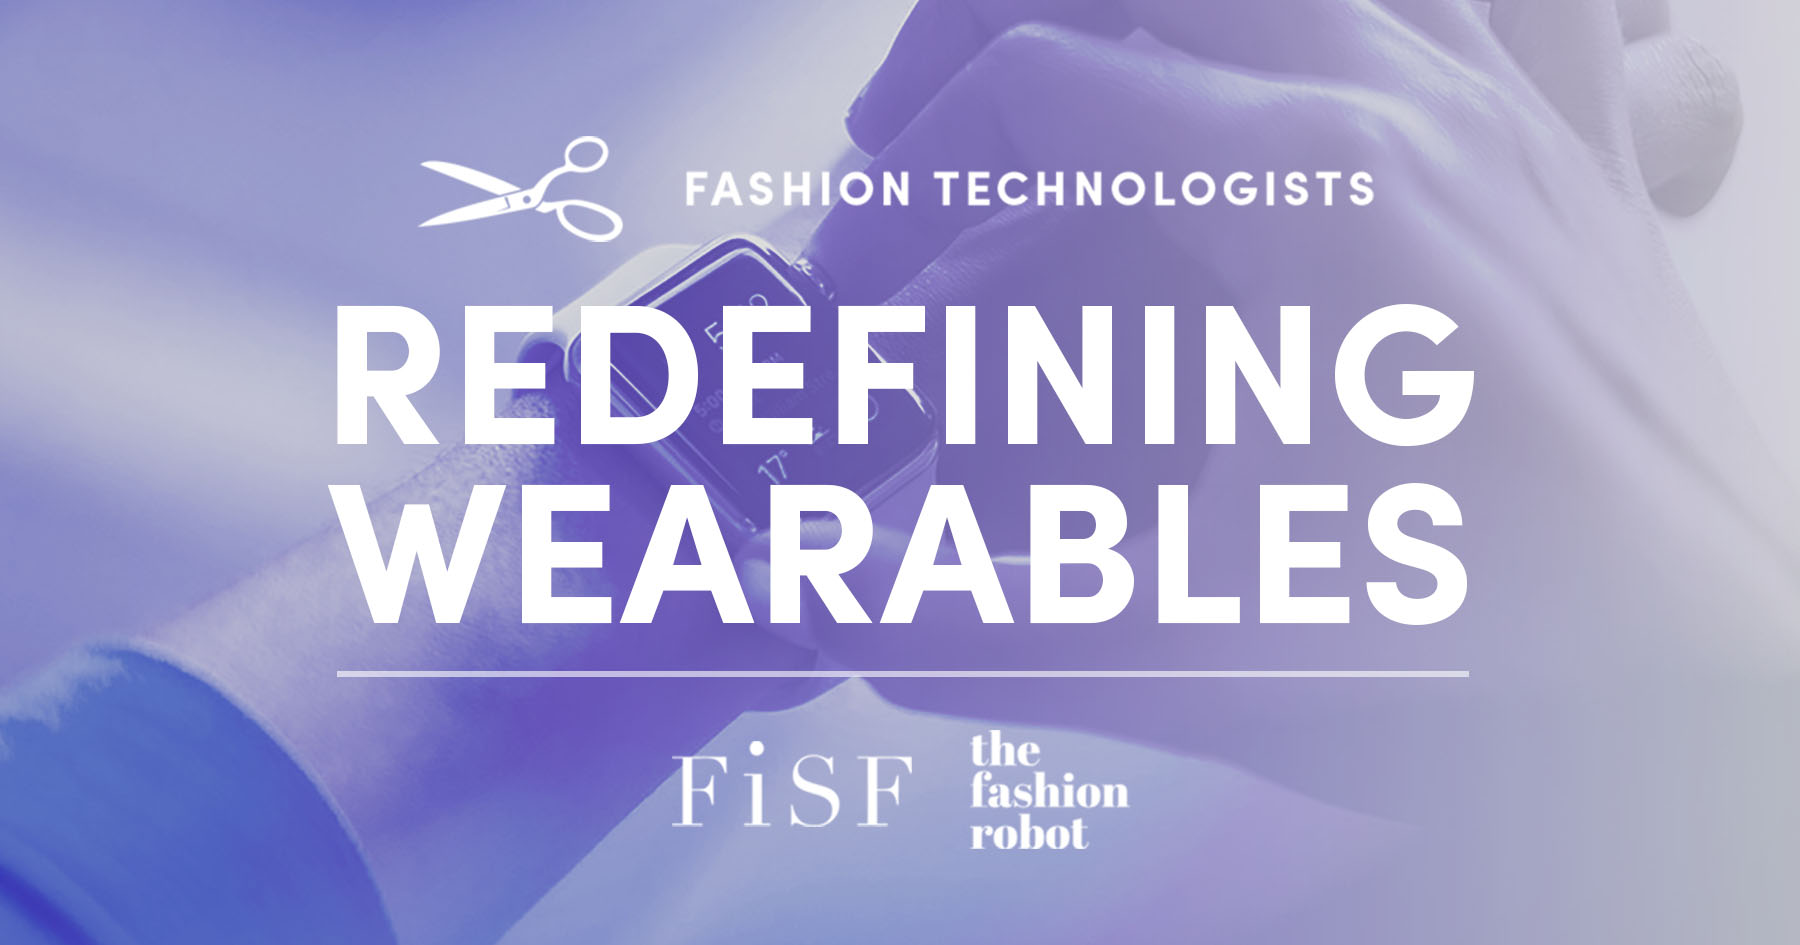 redefining wearables at fisf